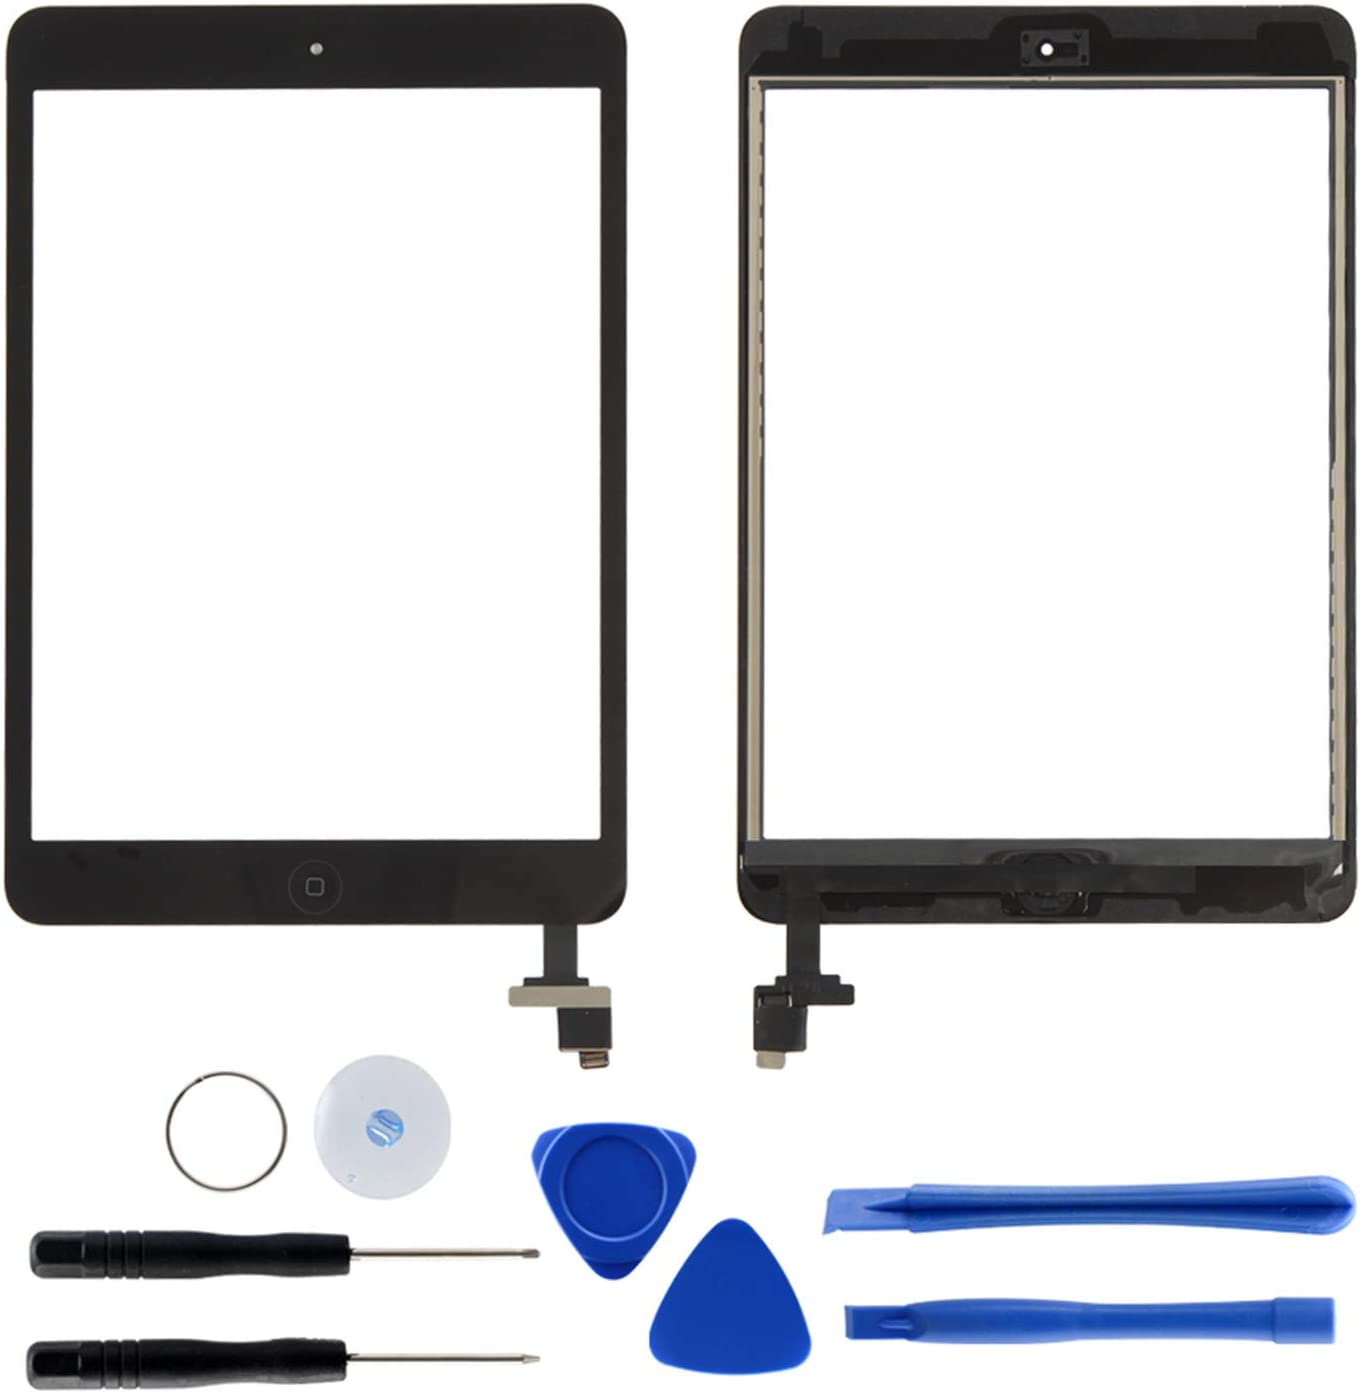 Digitizer Replacement for iPad Mini 1 2, Touch Screen Repair Assemble for A1432 A1454 A1455 A1489 A1490 A1491 with Home Button & IC Chip & Pre-Install Adhesive and Pry Toolkits